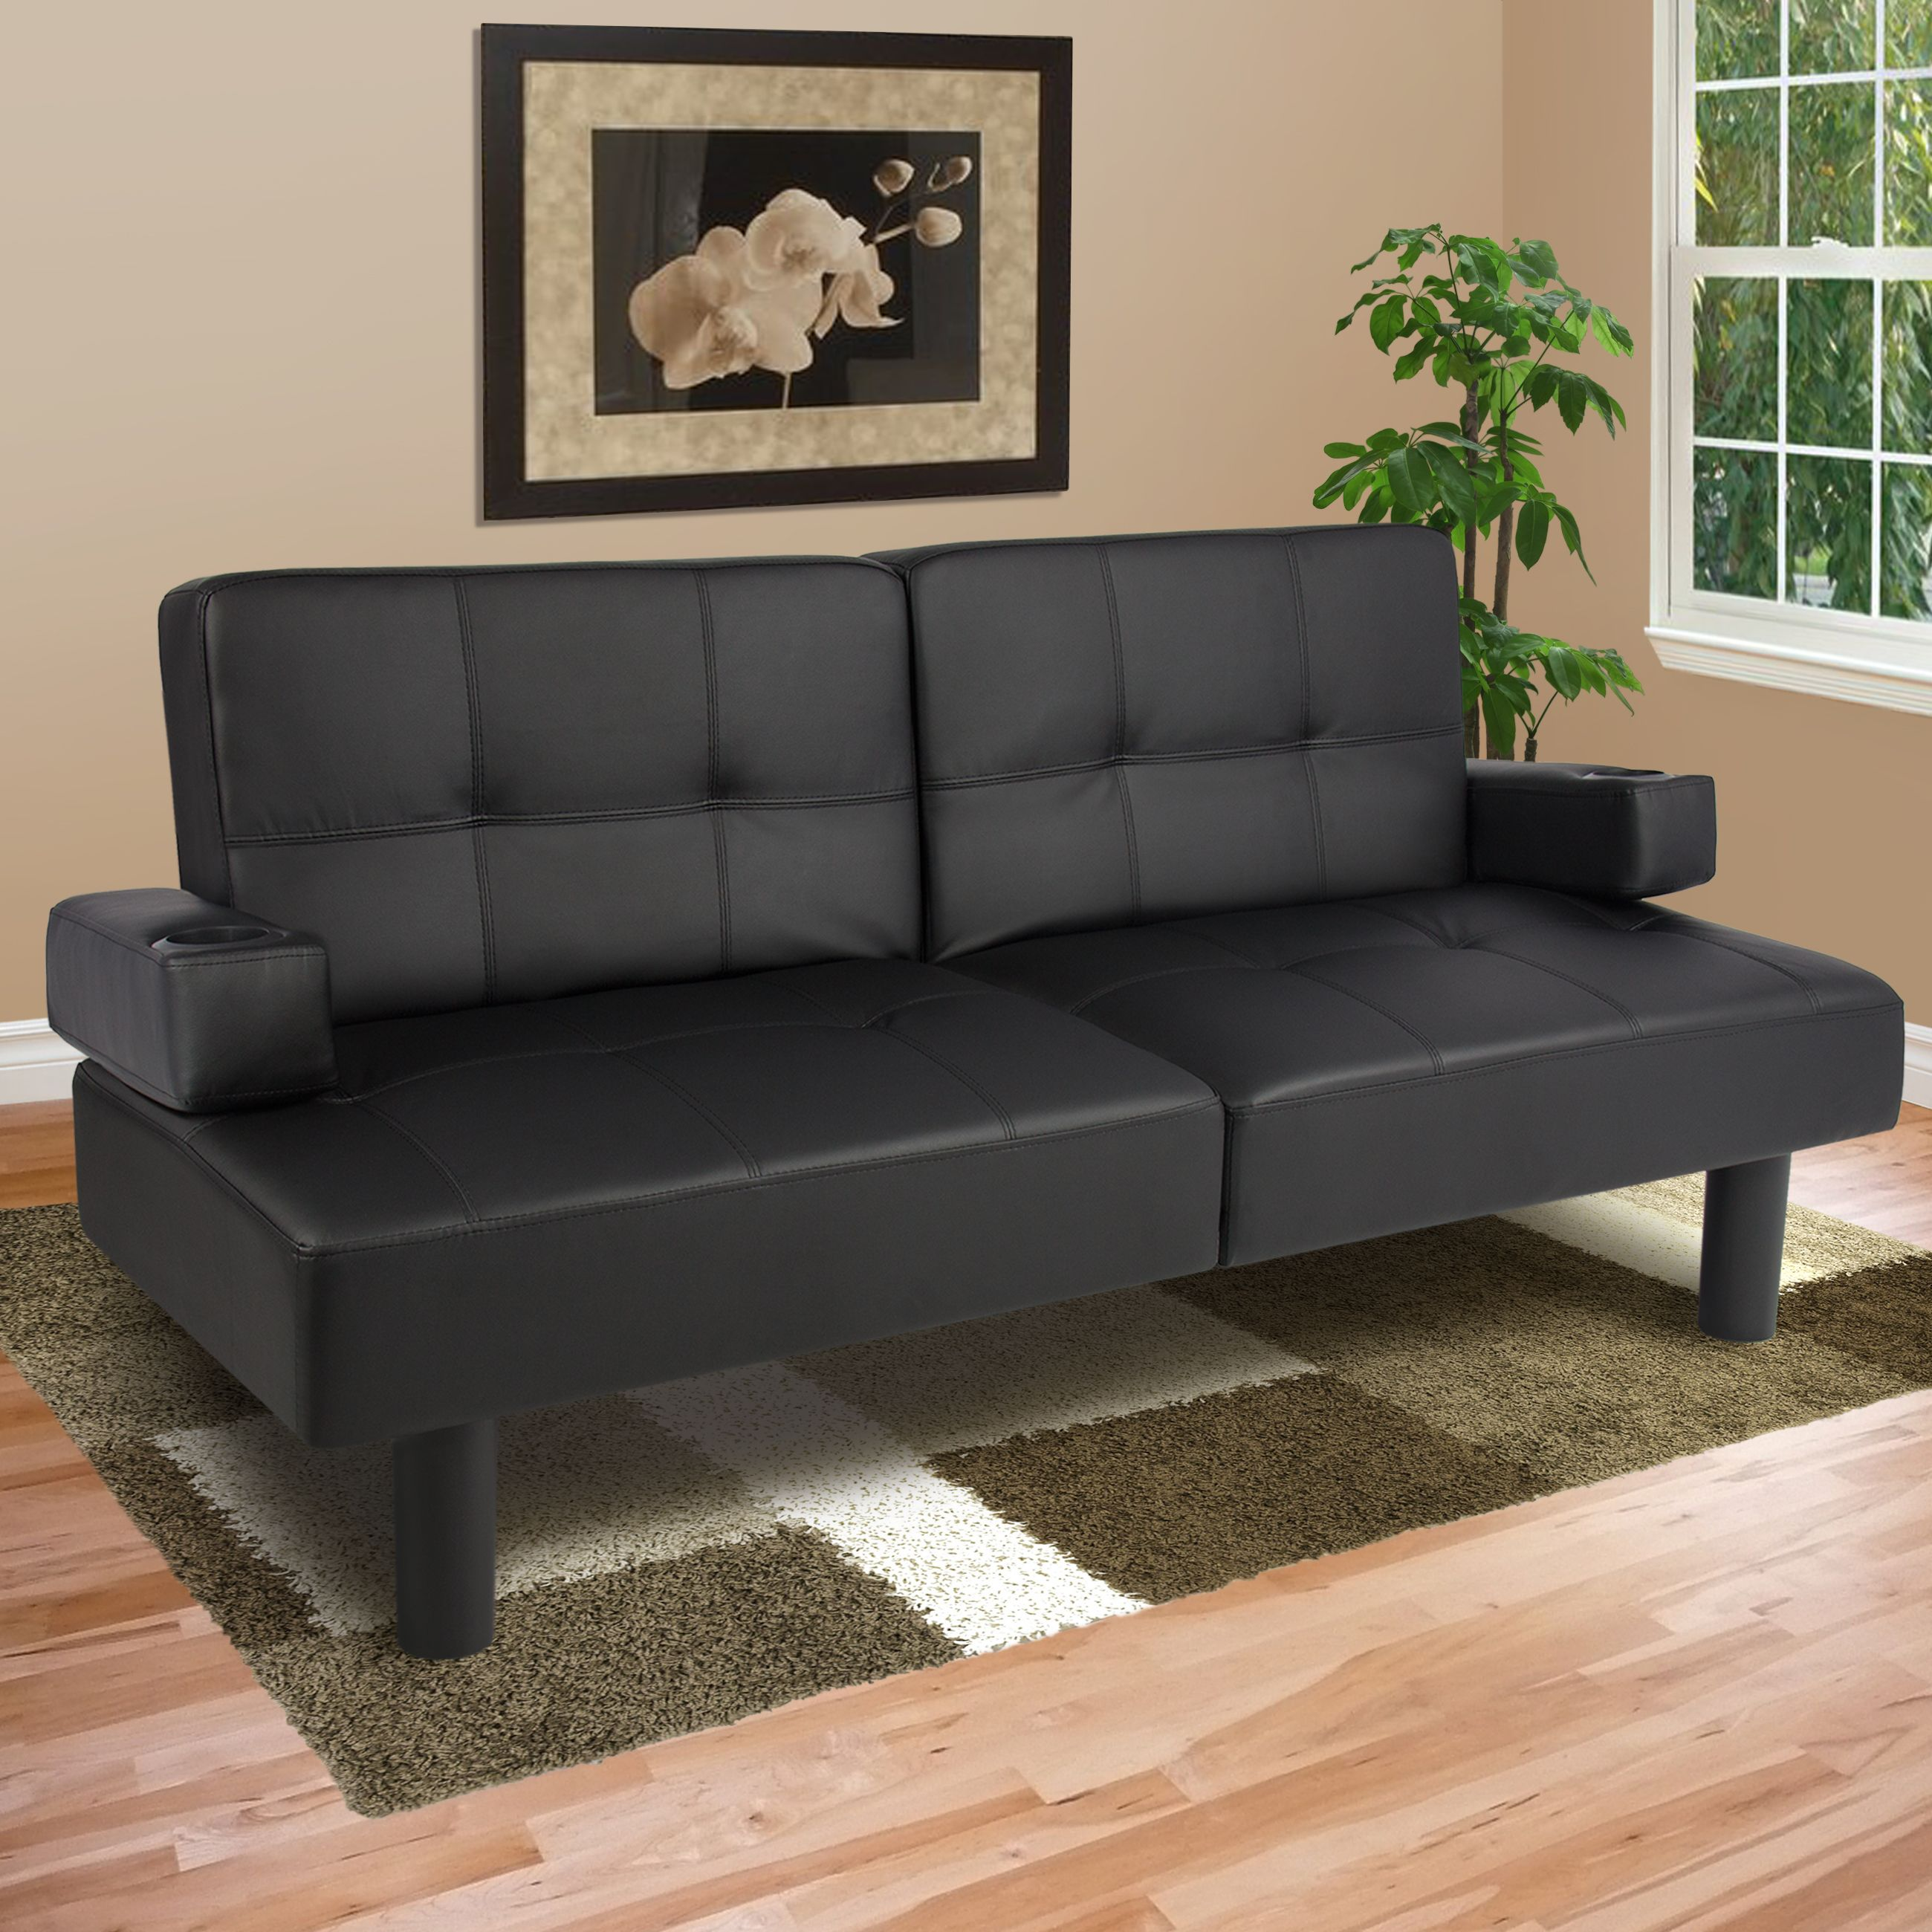 Room cool Futon Sofa Bed Living